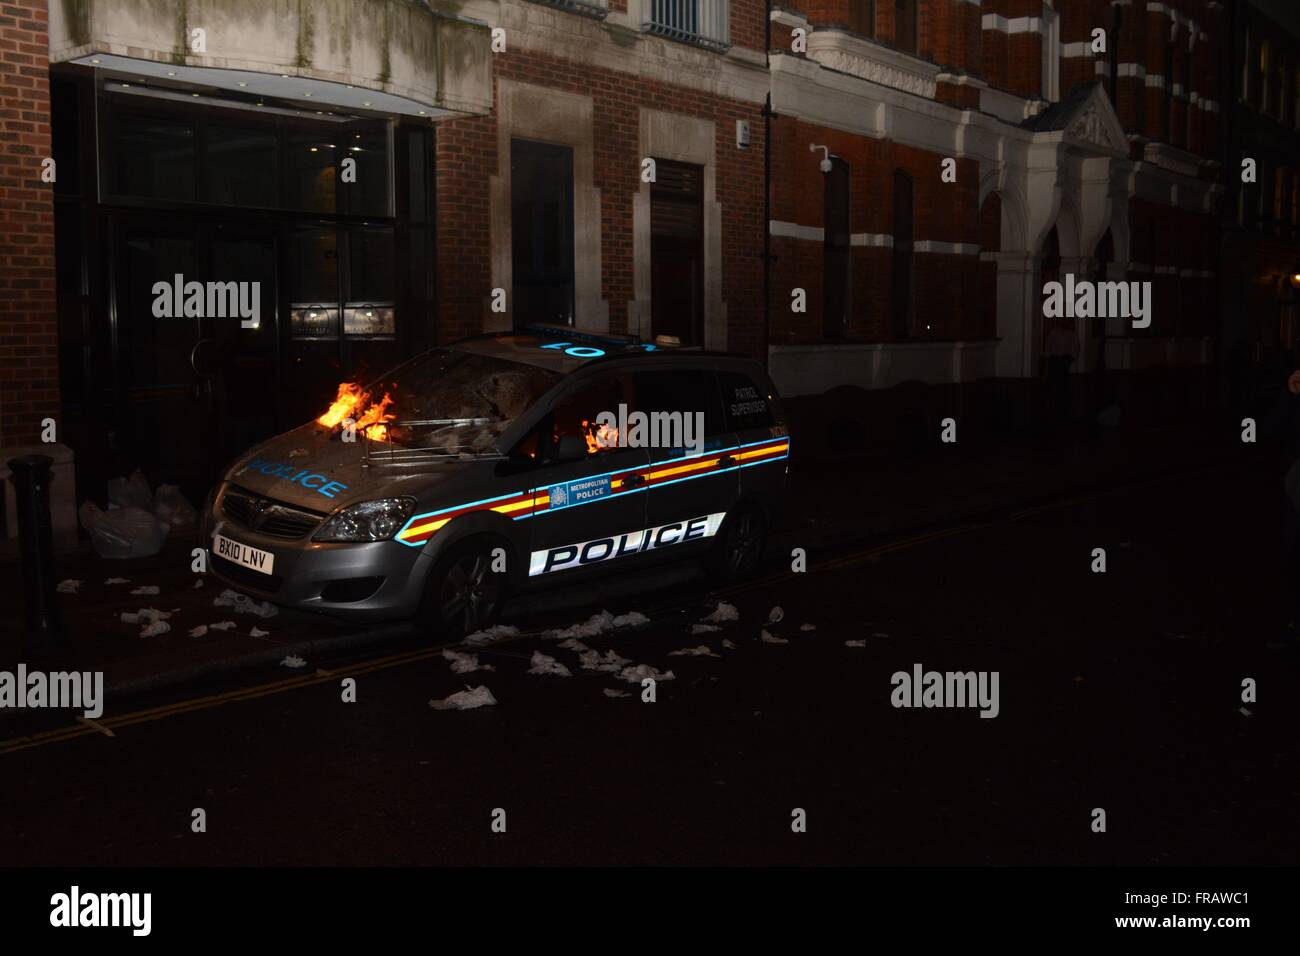 November 5th 2015. London, UK. Met Police car burns as protesters set fire to it. ©Marc Ward/Alamy Stock Photo